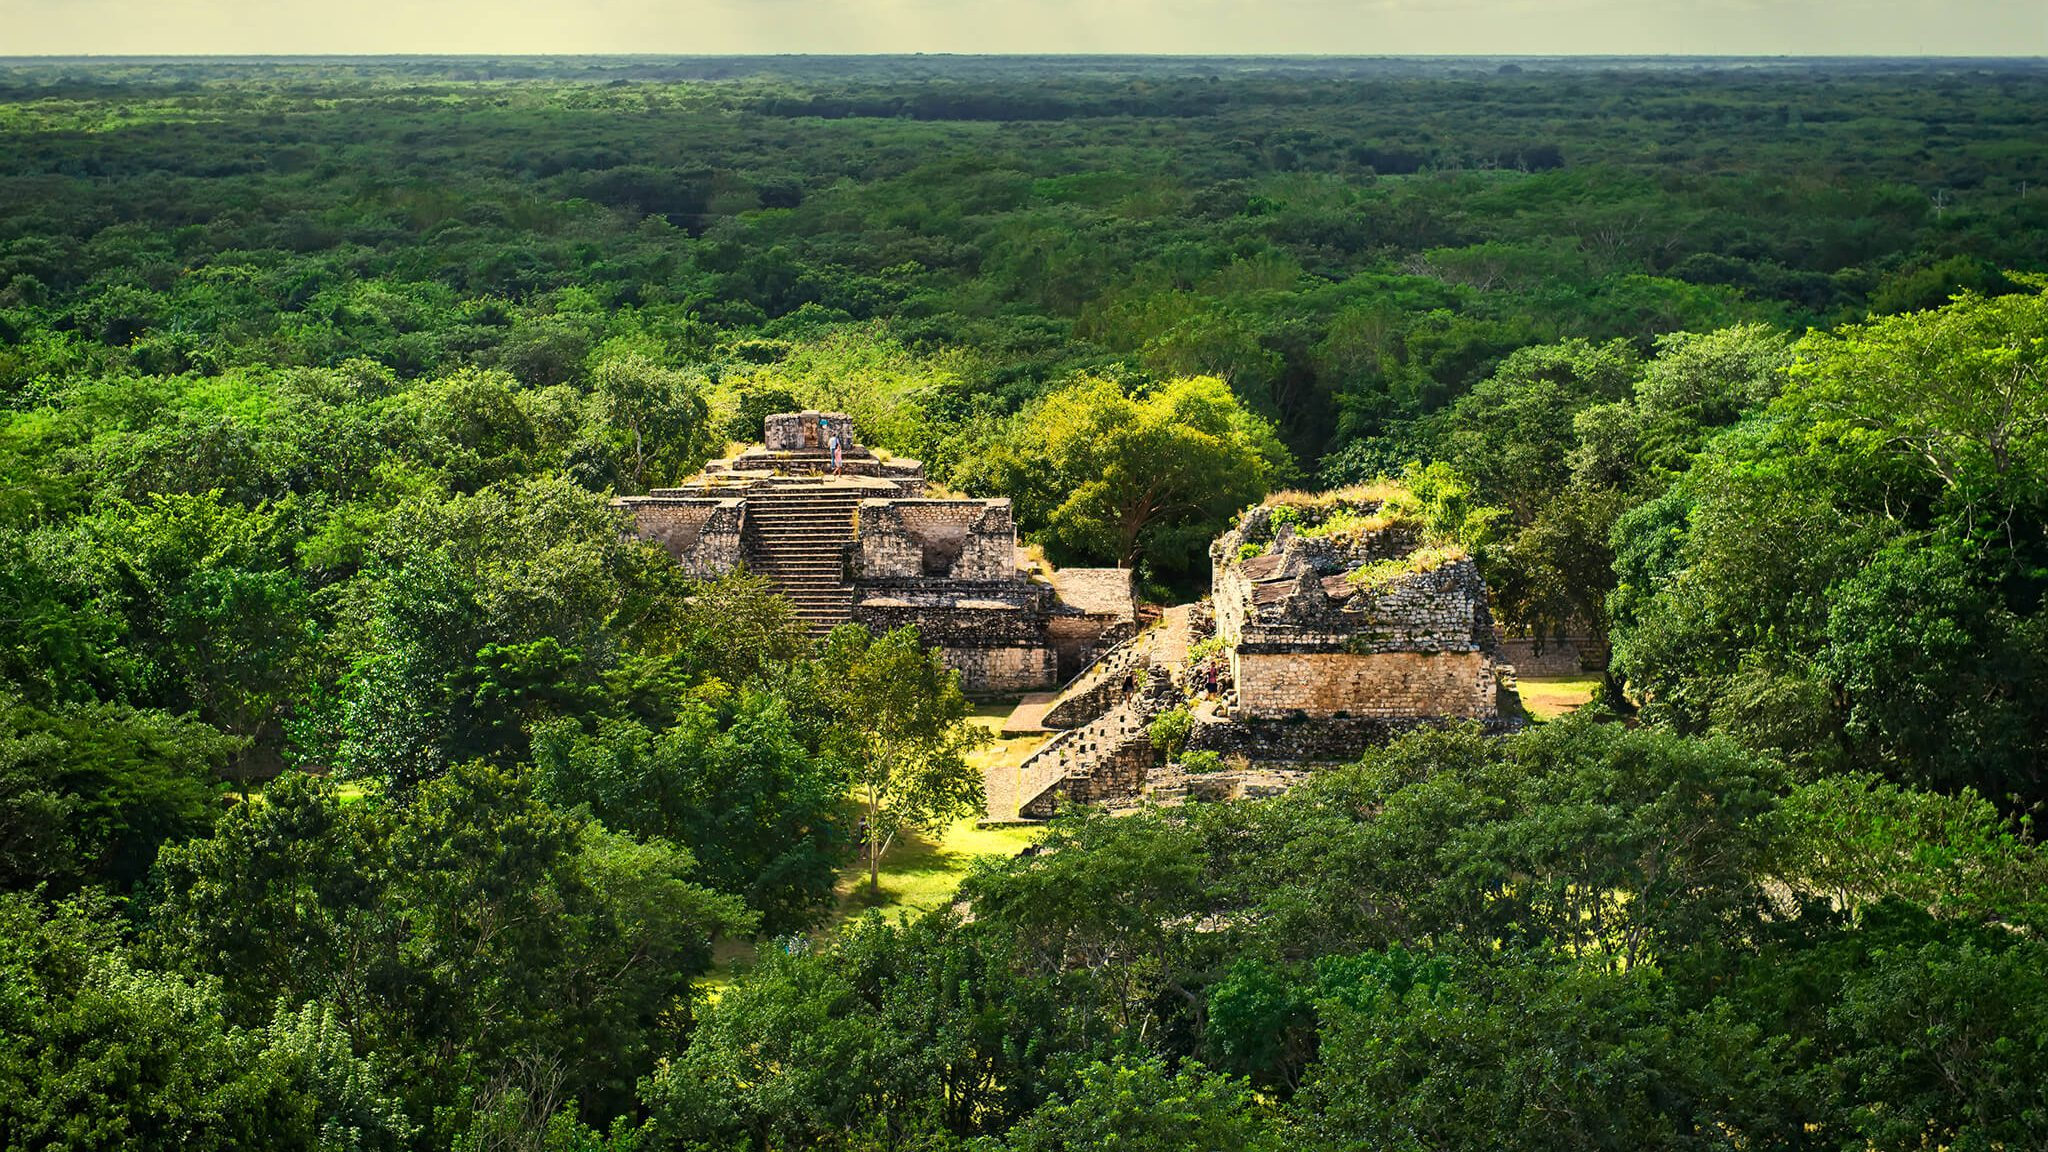 NCKRI Research made national geographic for their findings in Balamku, Yucatan, Mexico caves.